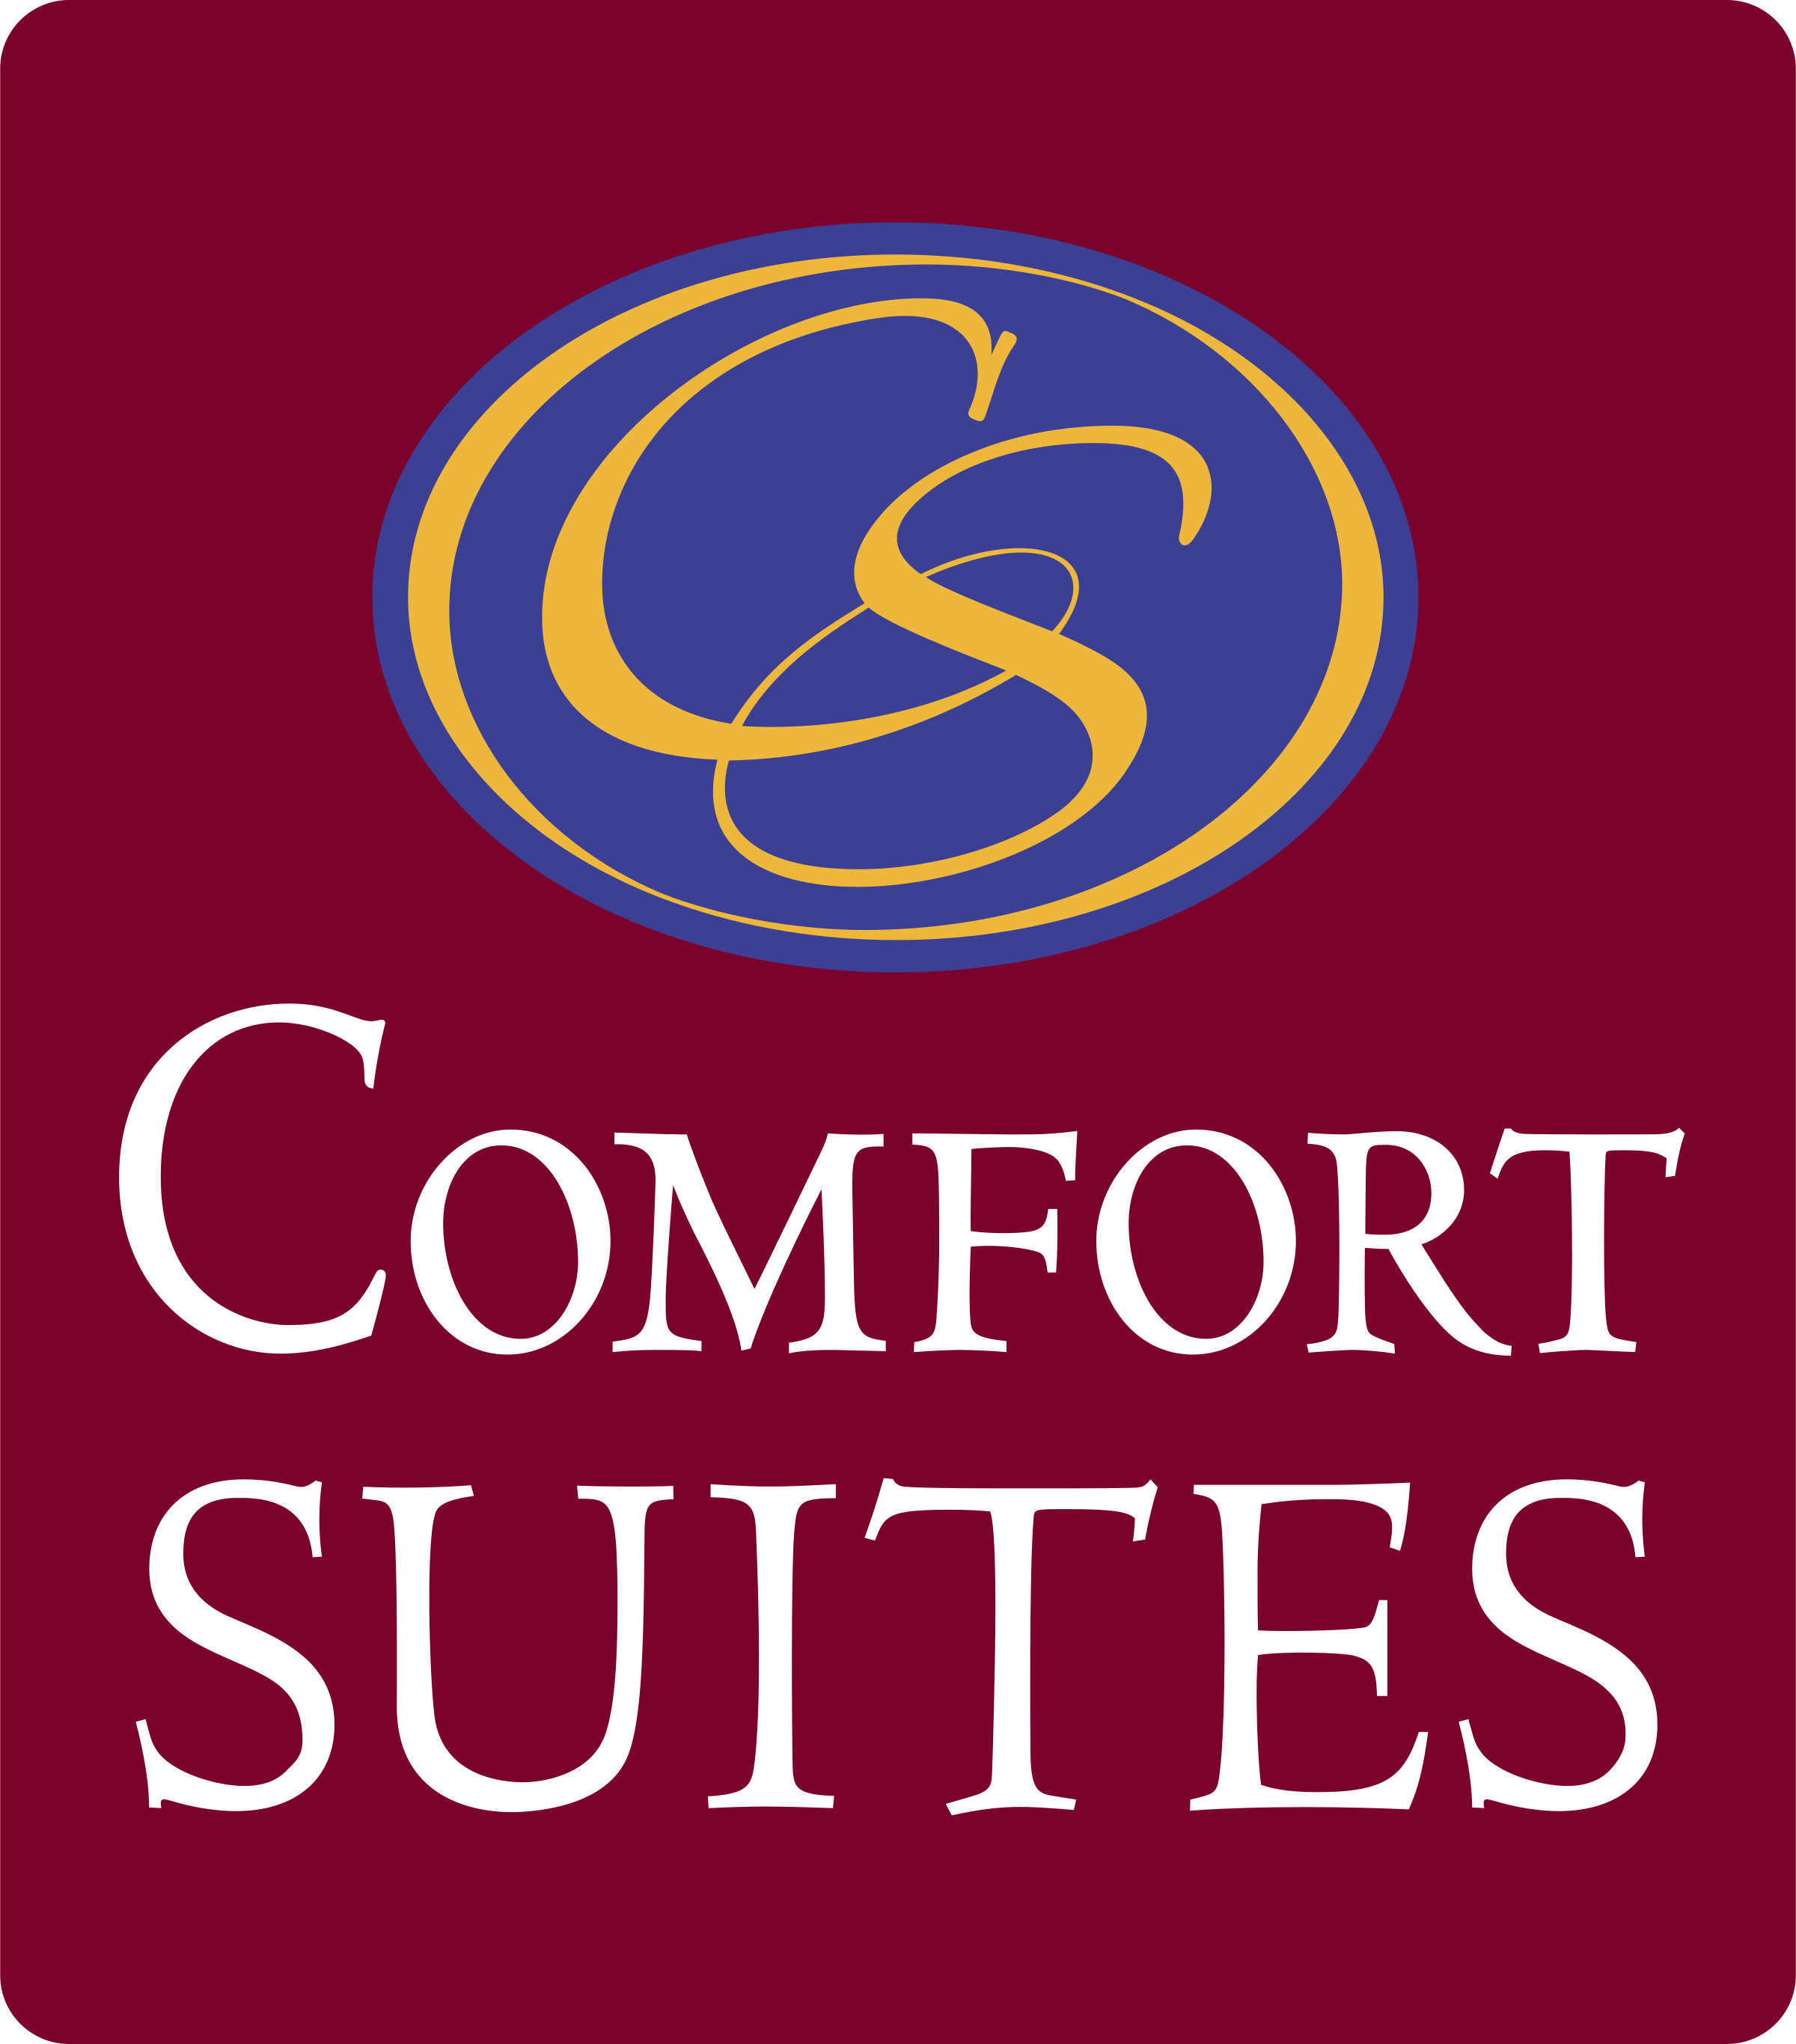 Comfort Suites new Logo PNG Transparent & SVG Vector.